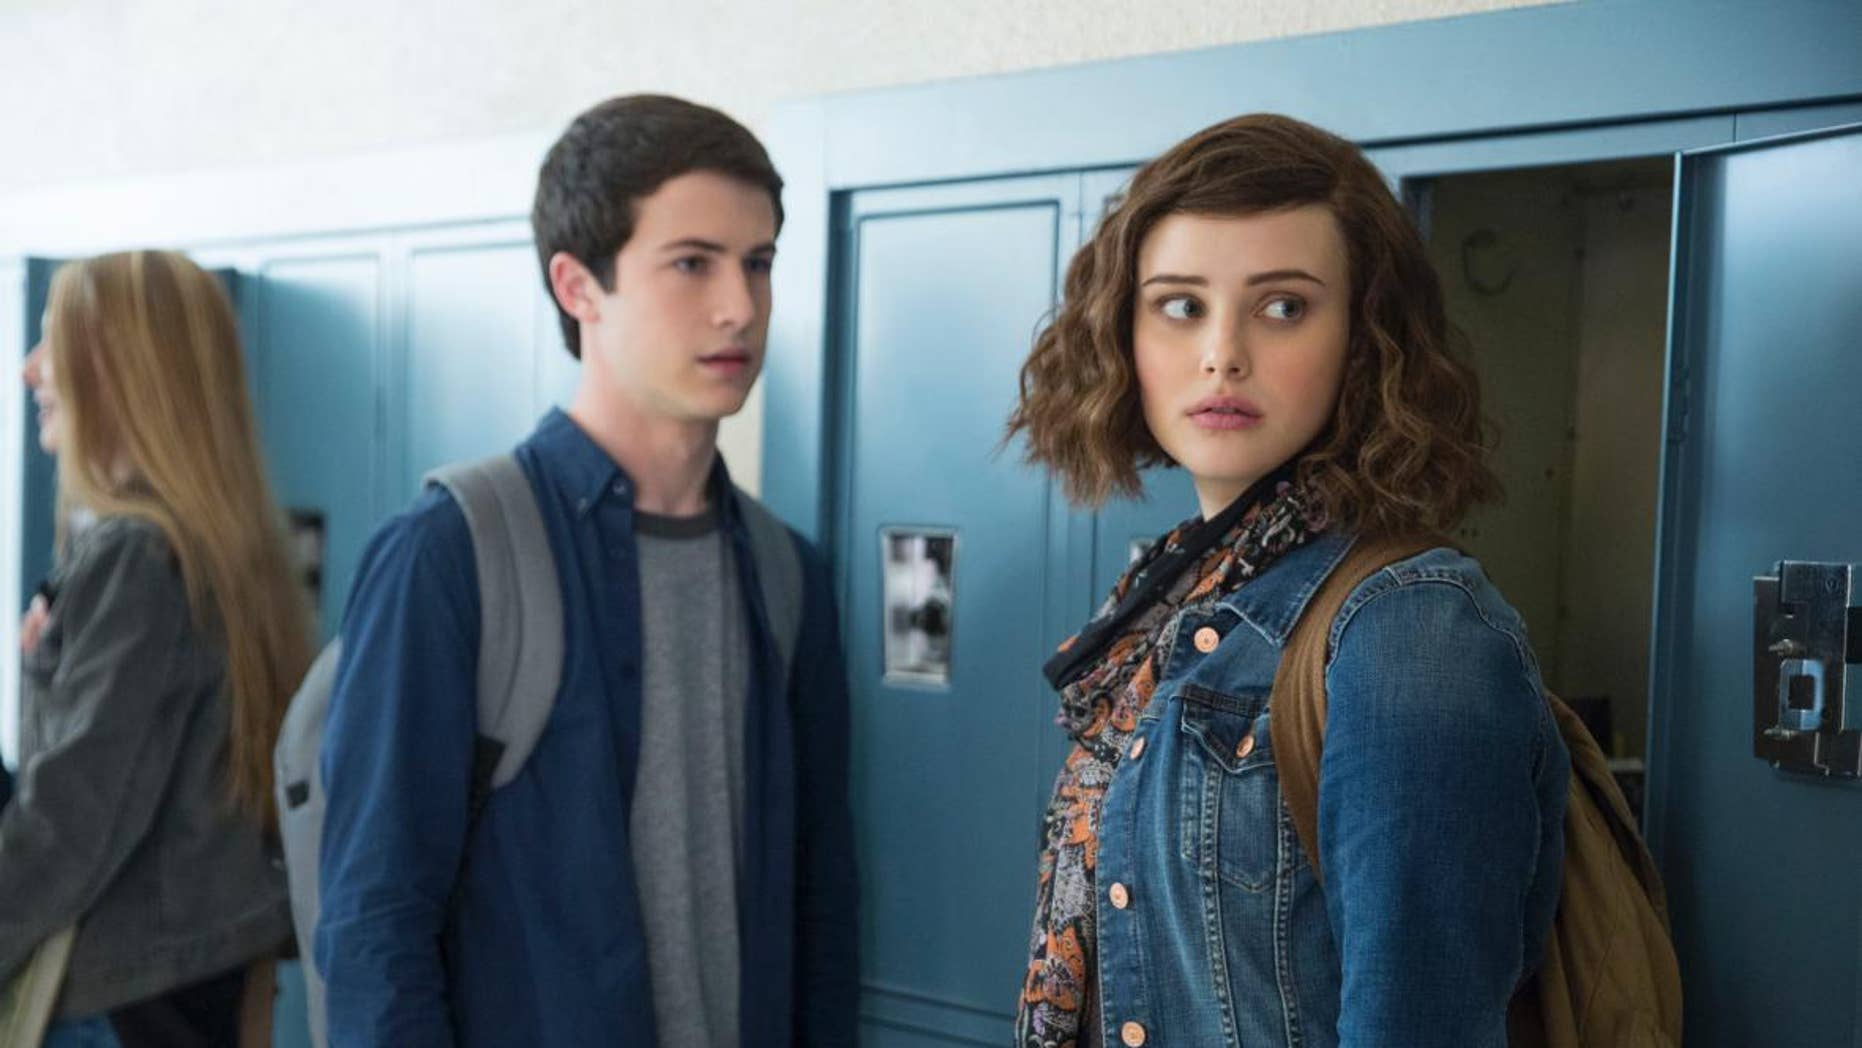 Westlake Legal Group t Netflix removes suicide scene from '13 Reasons Why' following debate The Wall Street Journal fox-news/organization/netflix fox-news/entertainment/genres/streaming fnc/entertainment fnc article 14e22336-9a6b-5d98-80eb-03b404a79e18